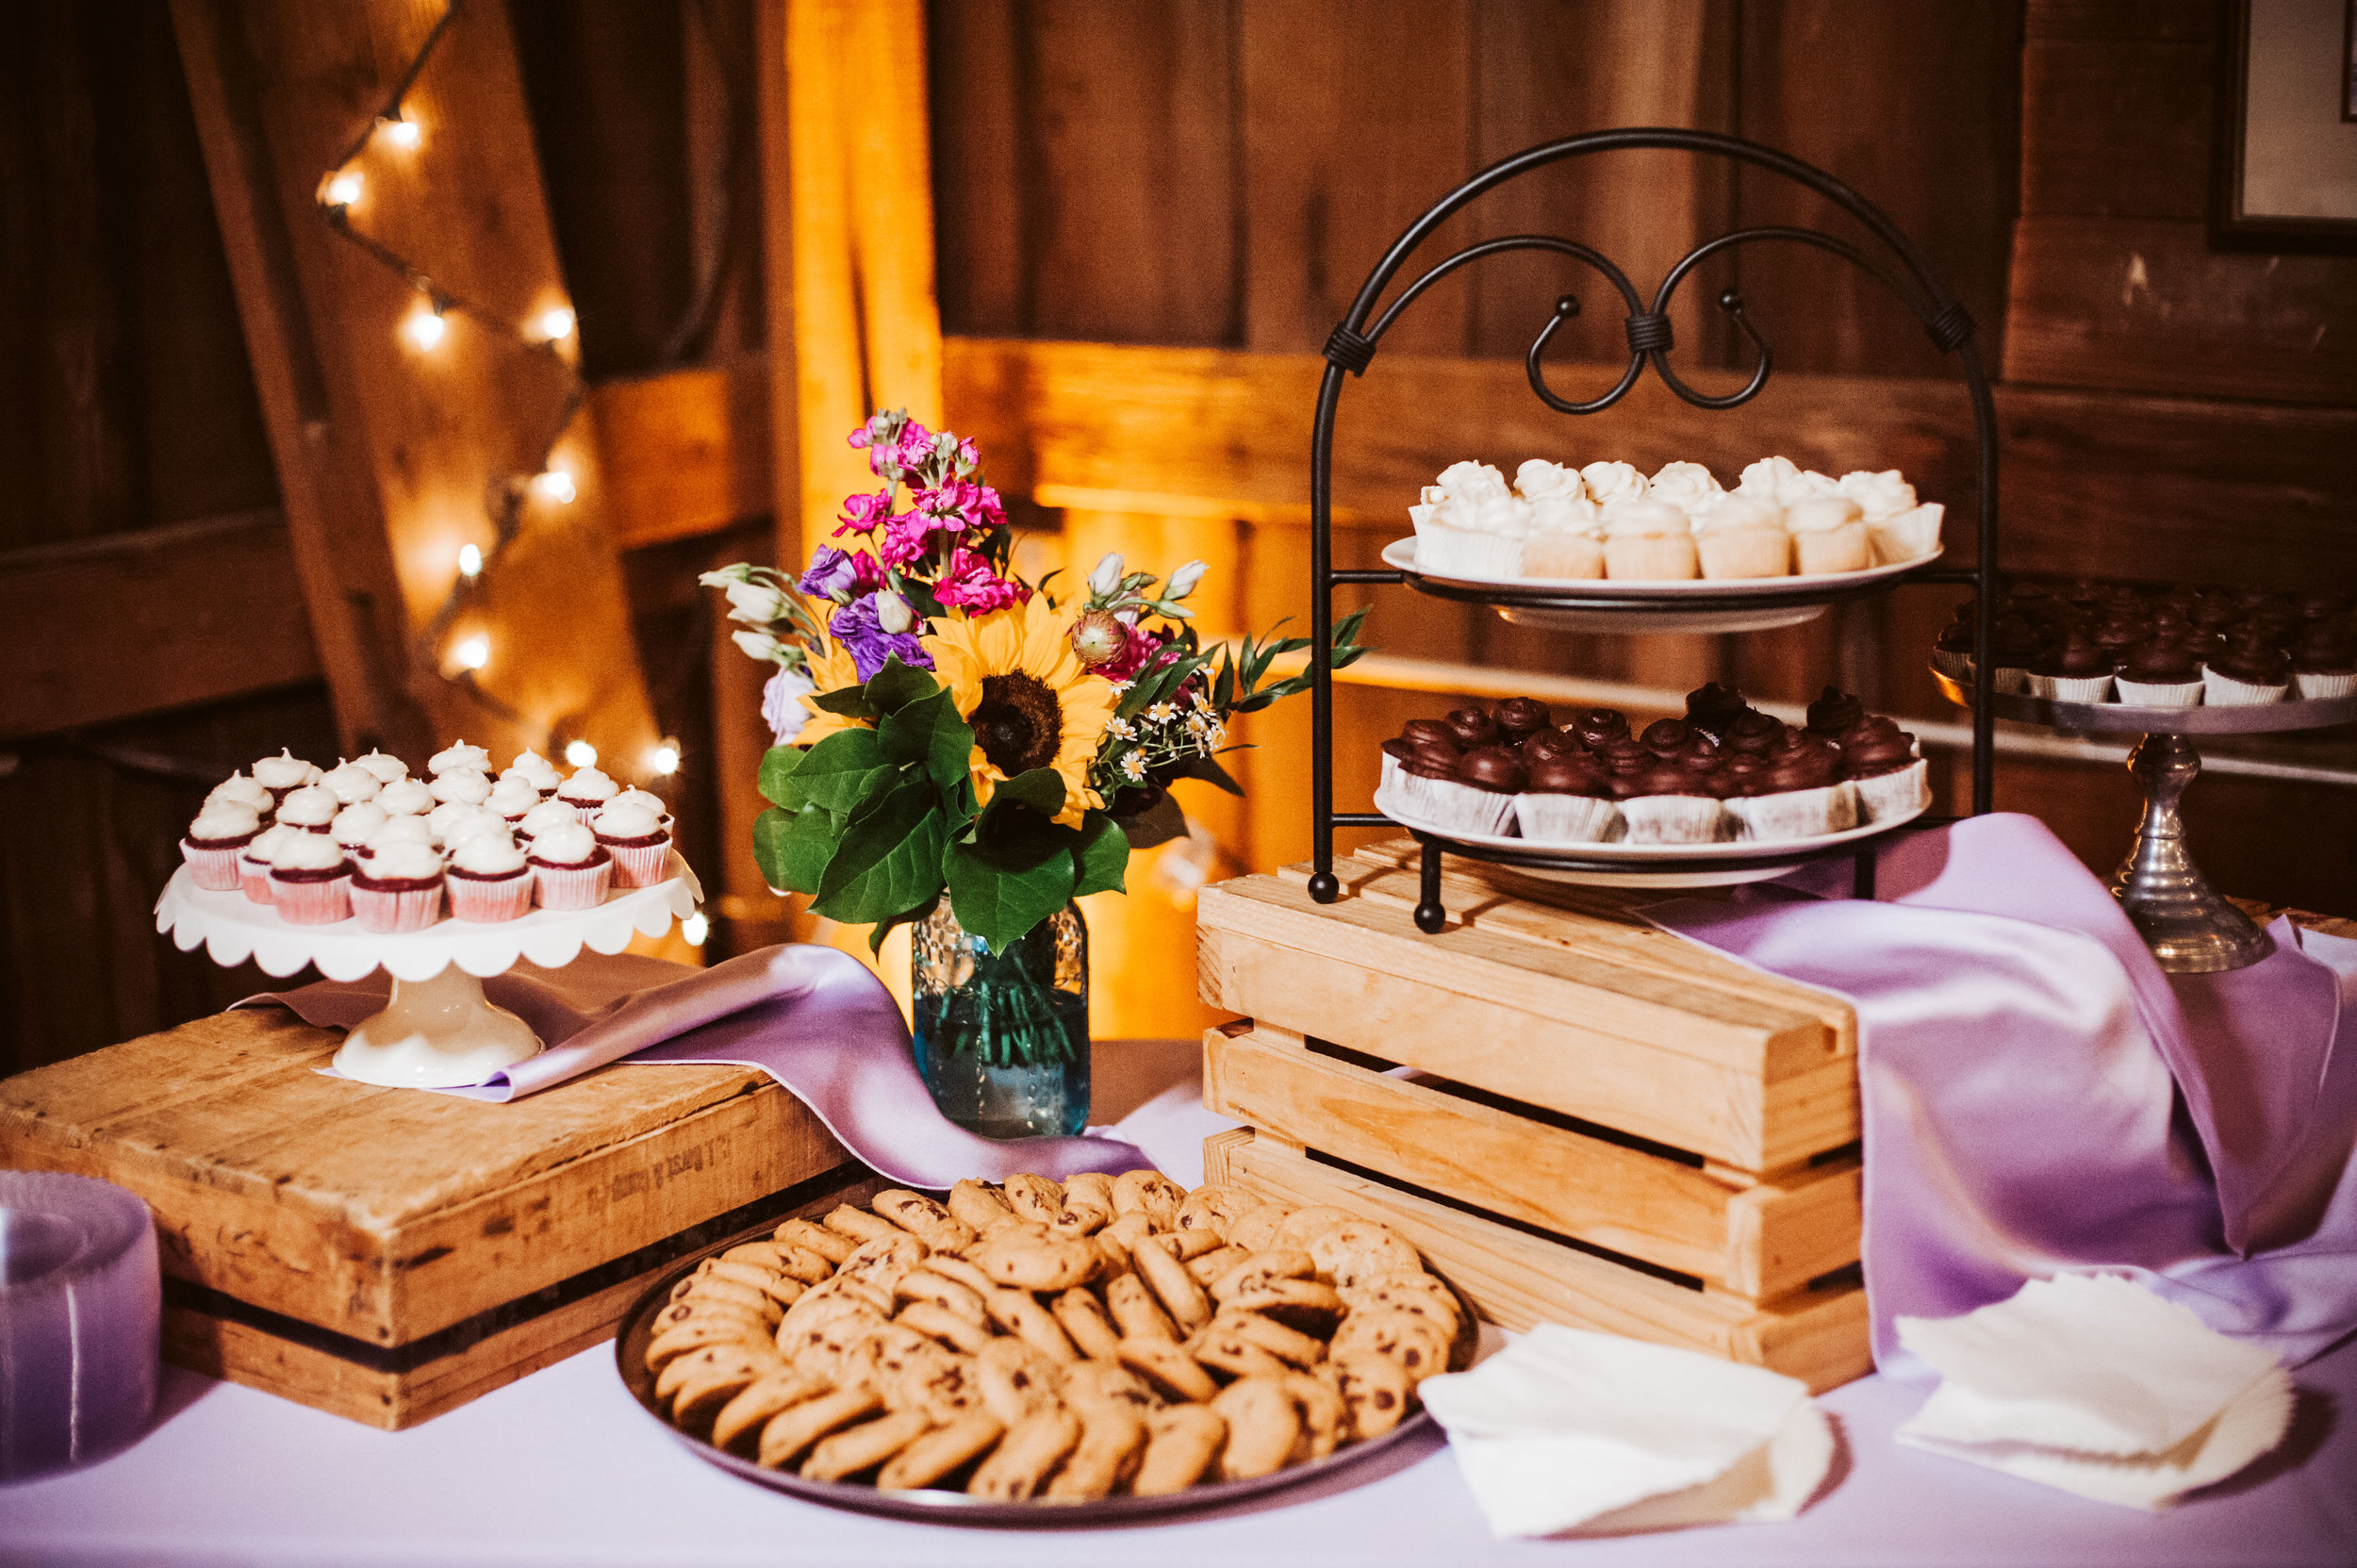 Sweets Table at Barn Wedding Reception